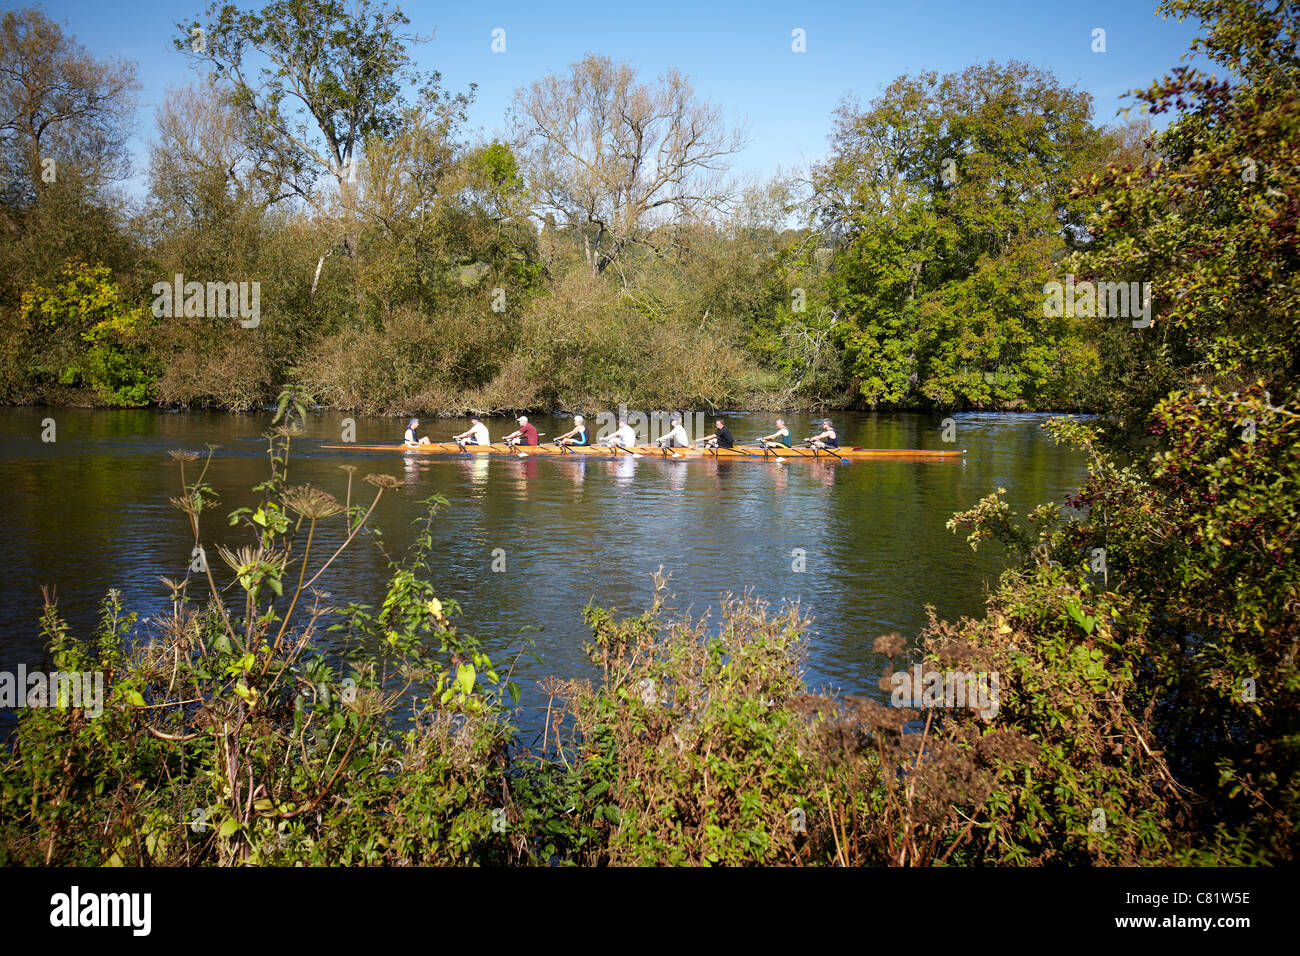 A crew of eight rowers, rowing on the River Thames near to Pangbourne, Reading, Berkshire. - Stock Image